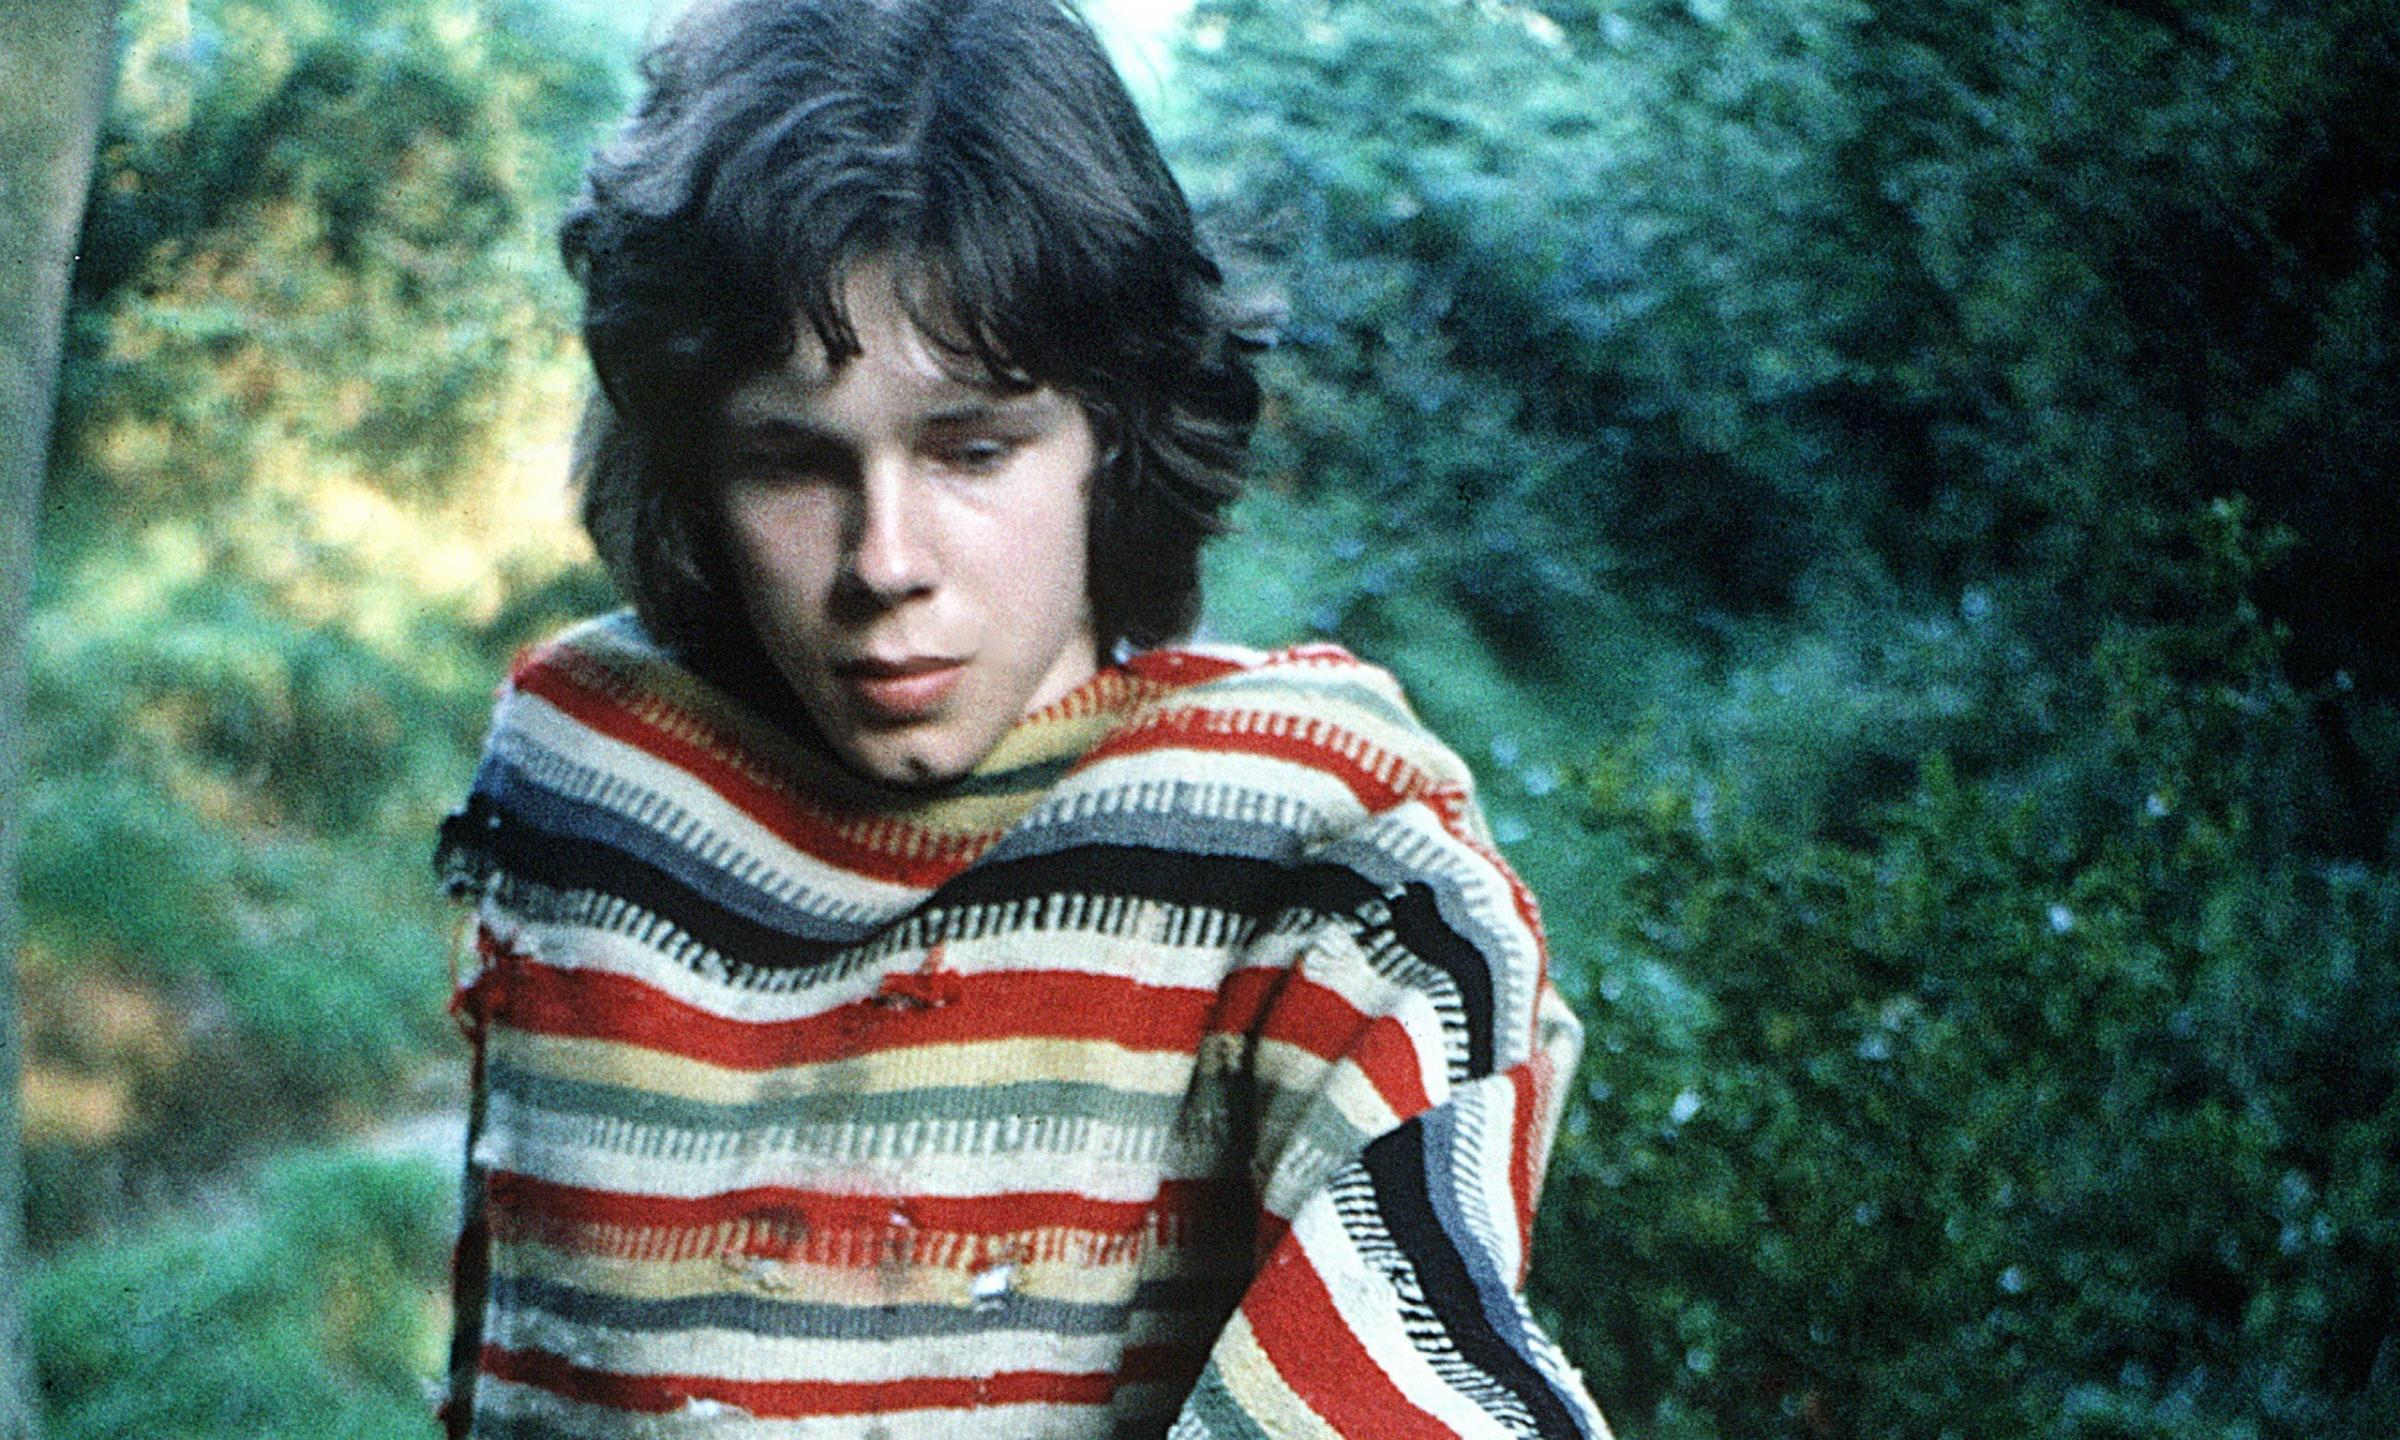 MUSIC: Singer-songwriter Nick Drake